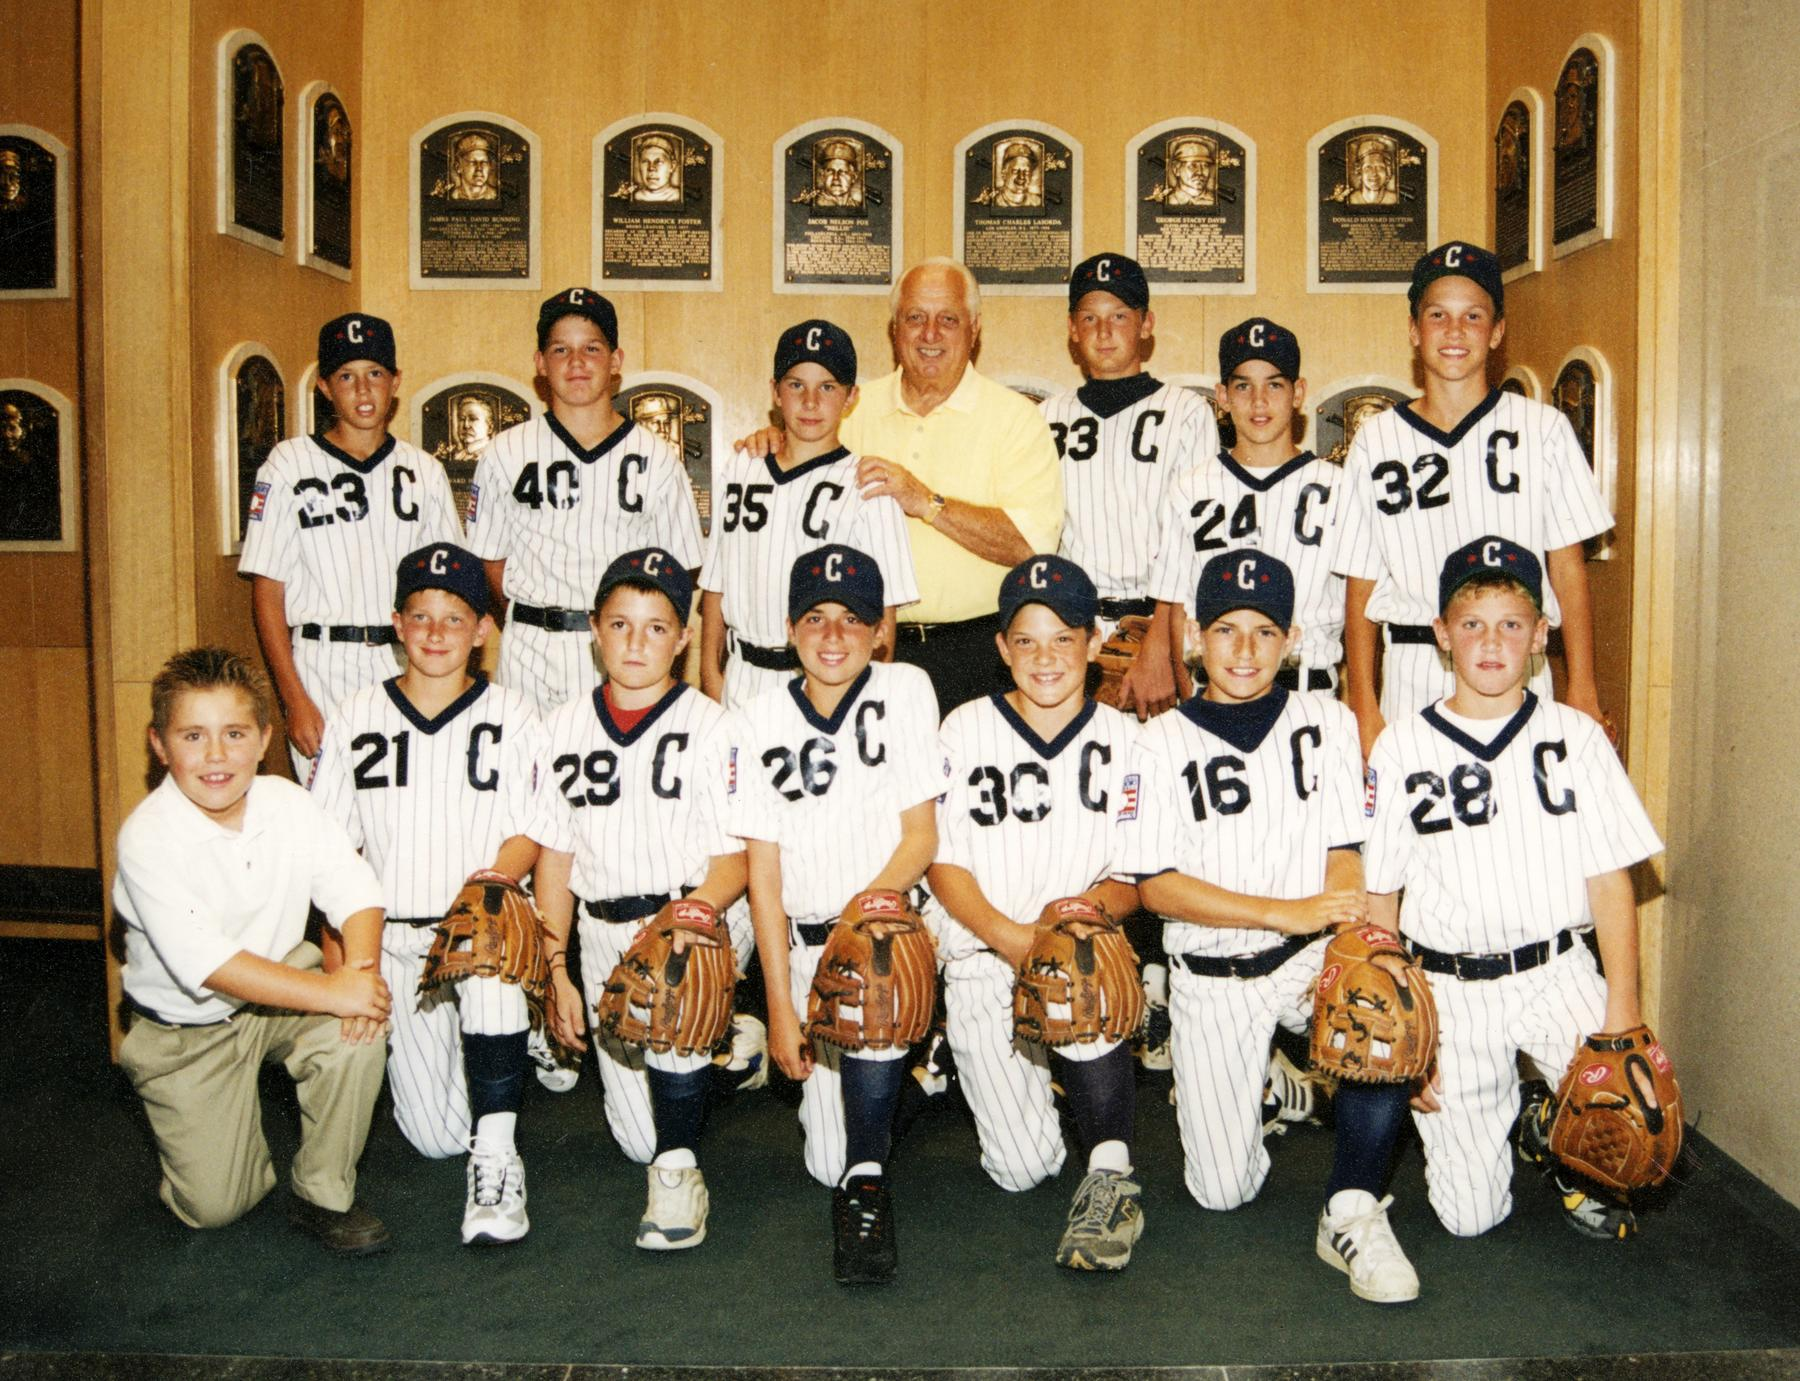 Phil Pohl (third from right, bottom) spent his youth in the shadows of baseball's hallowed ground. In this photo, Pohl's youth baseball team poses with Hall of Famer Tommy Lasorda in the Museum's Plaque Gallery. (Milo Stewart Jr. / National Baseball Hall of Fame)